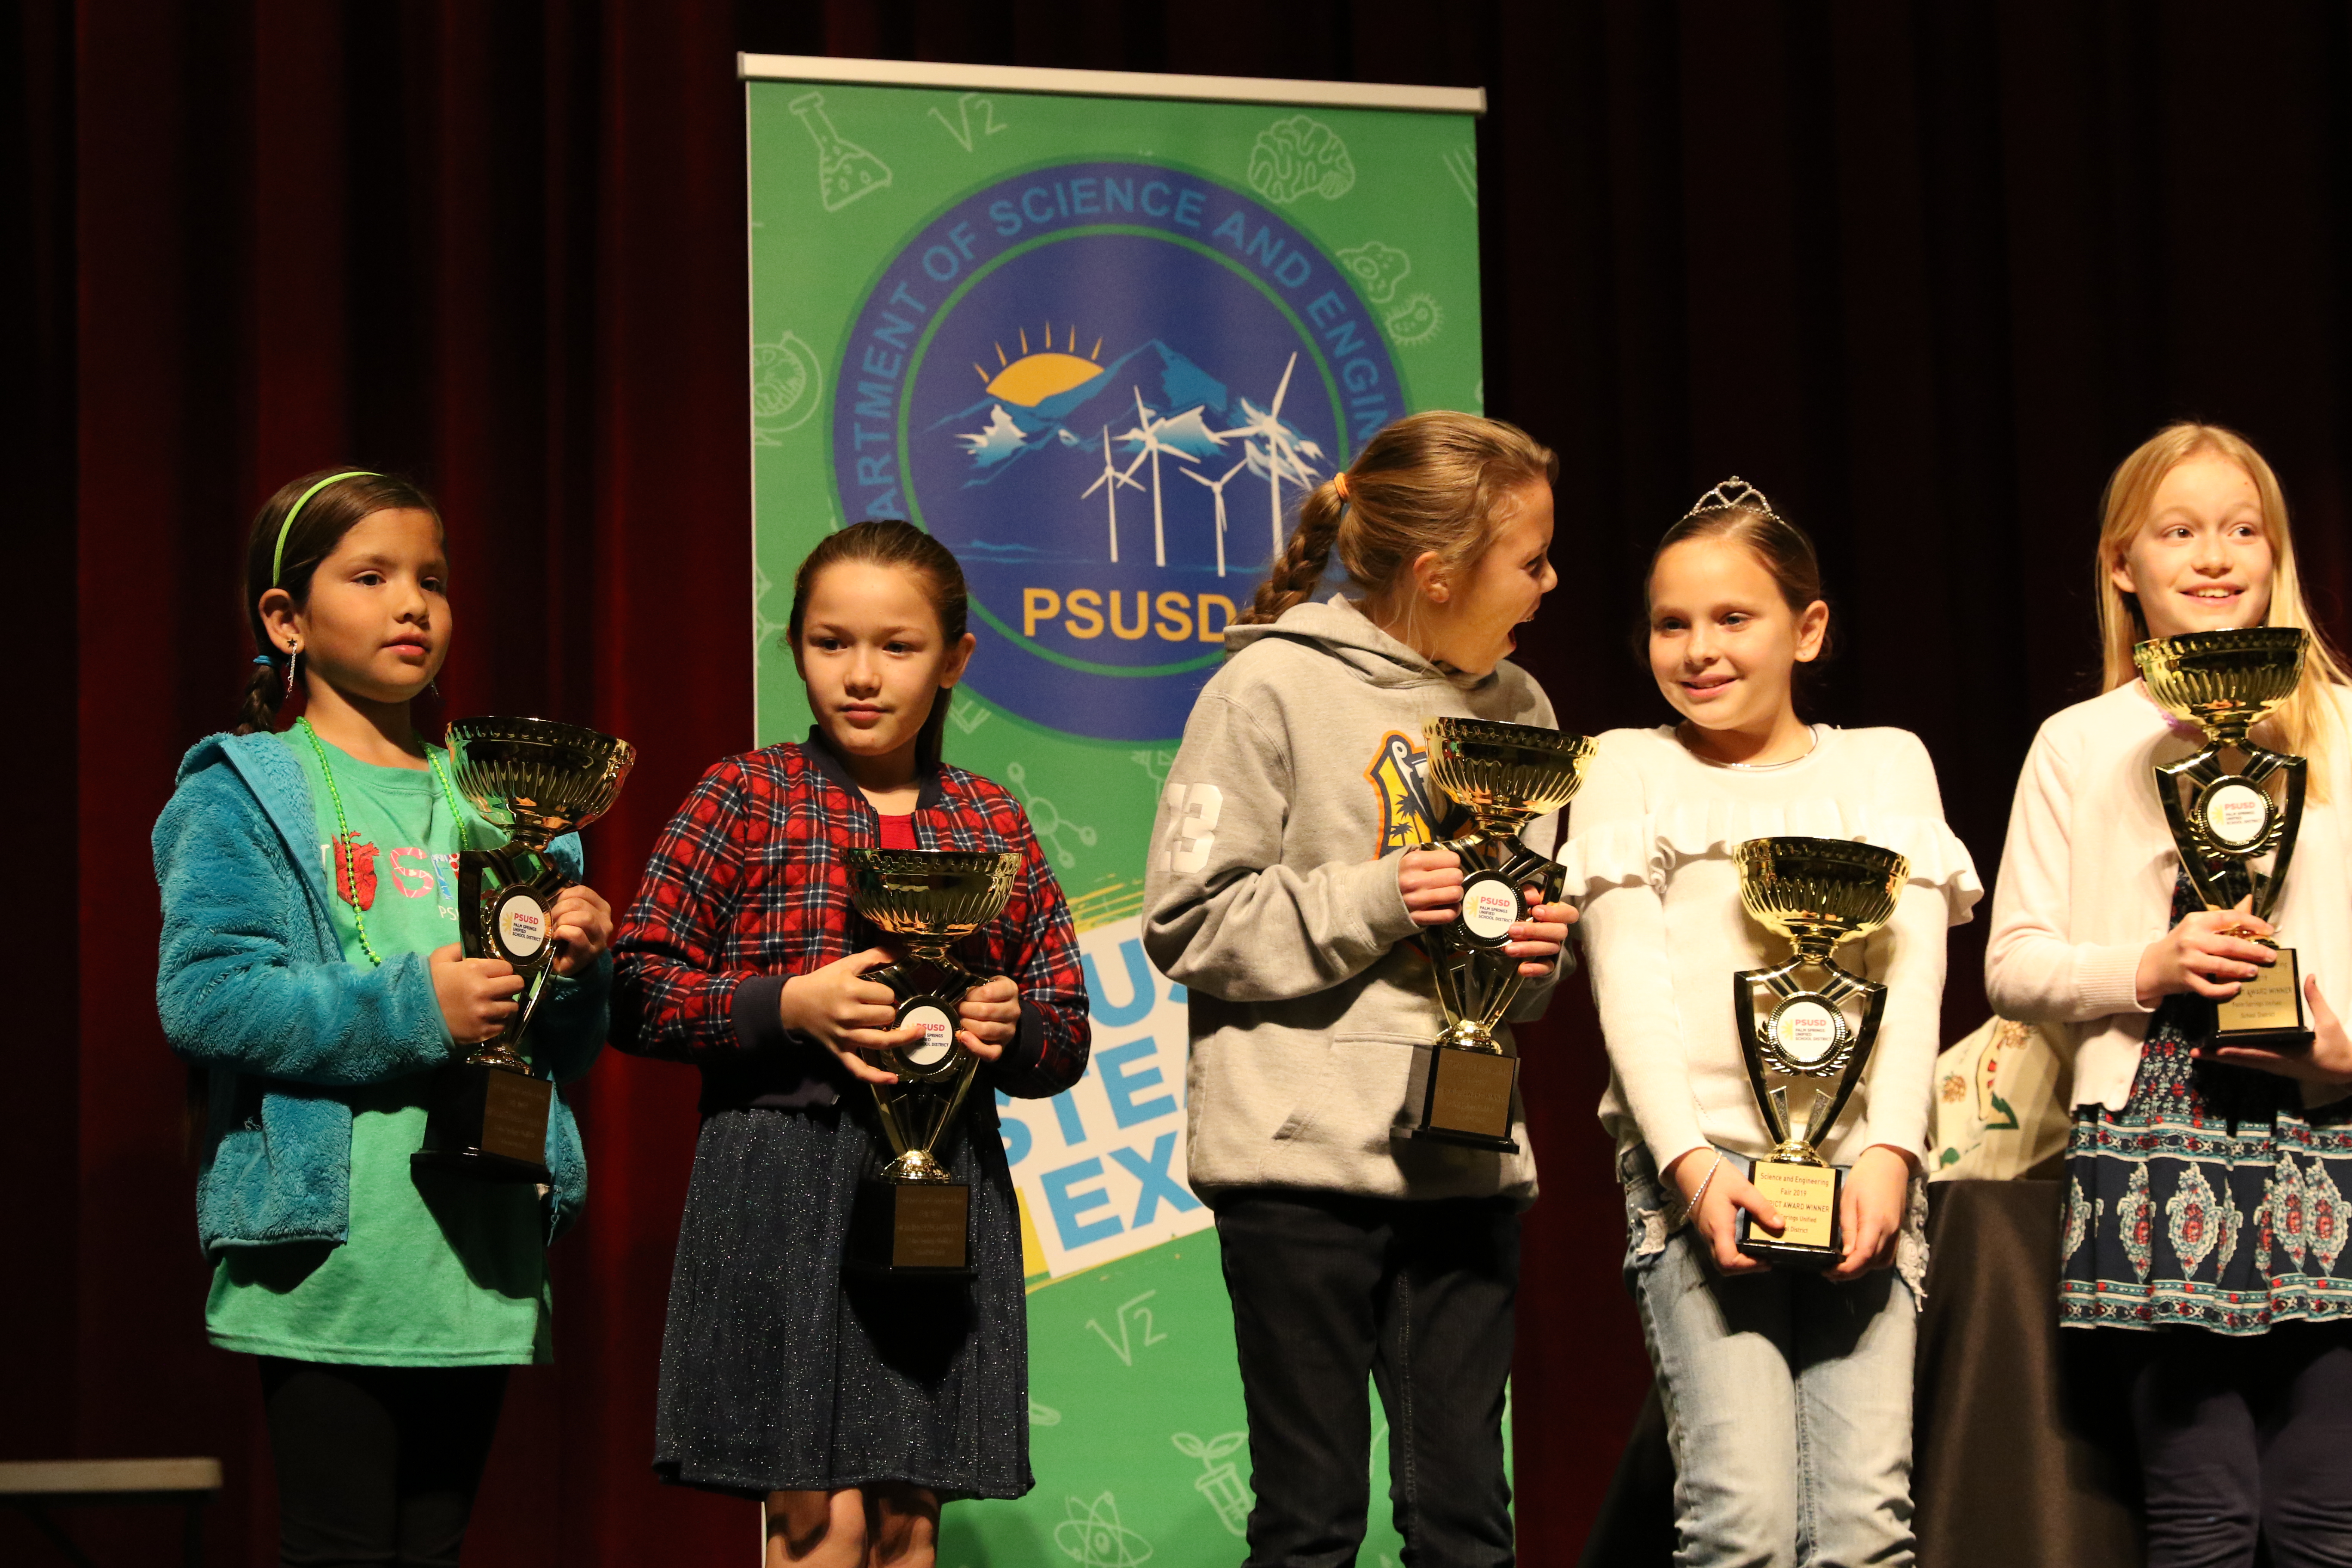 In Palm Springs USD, the STEAM Expo & Science and Engineering Fair is a community event that promotes equity and access, and also encourages attendees to engage and experiment.